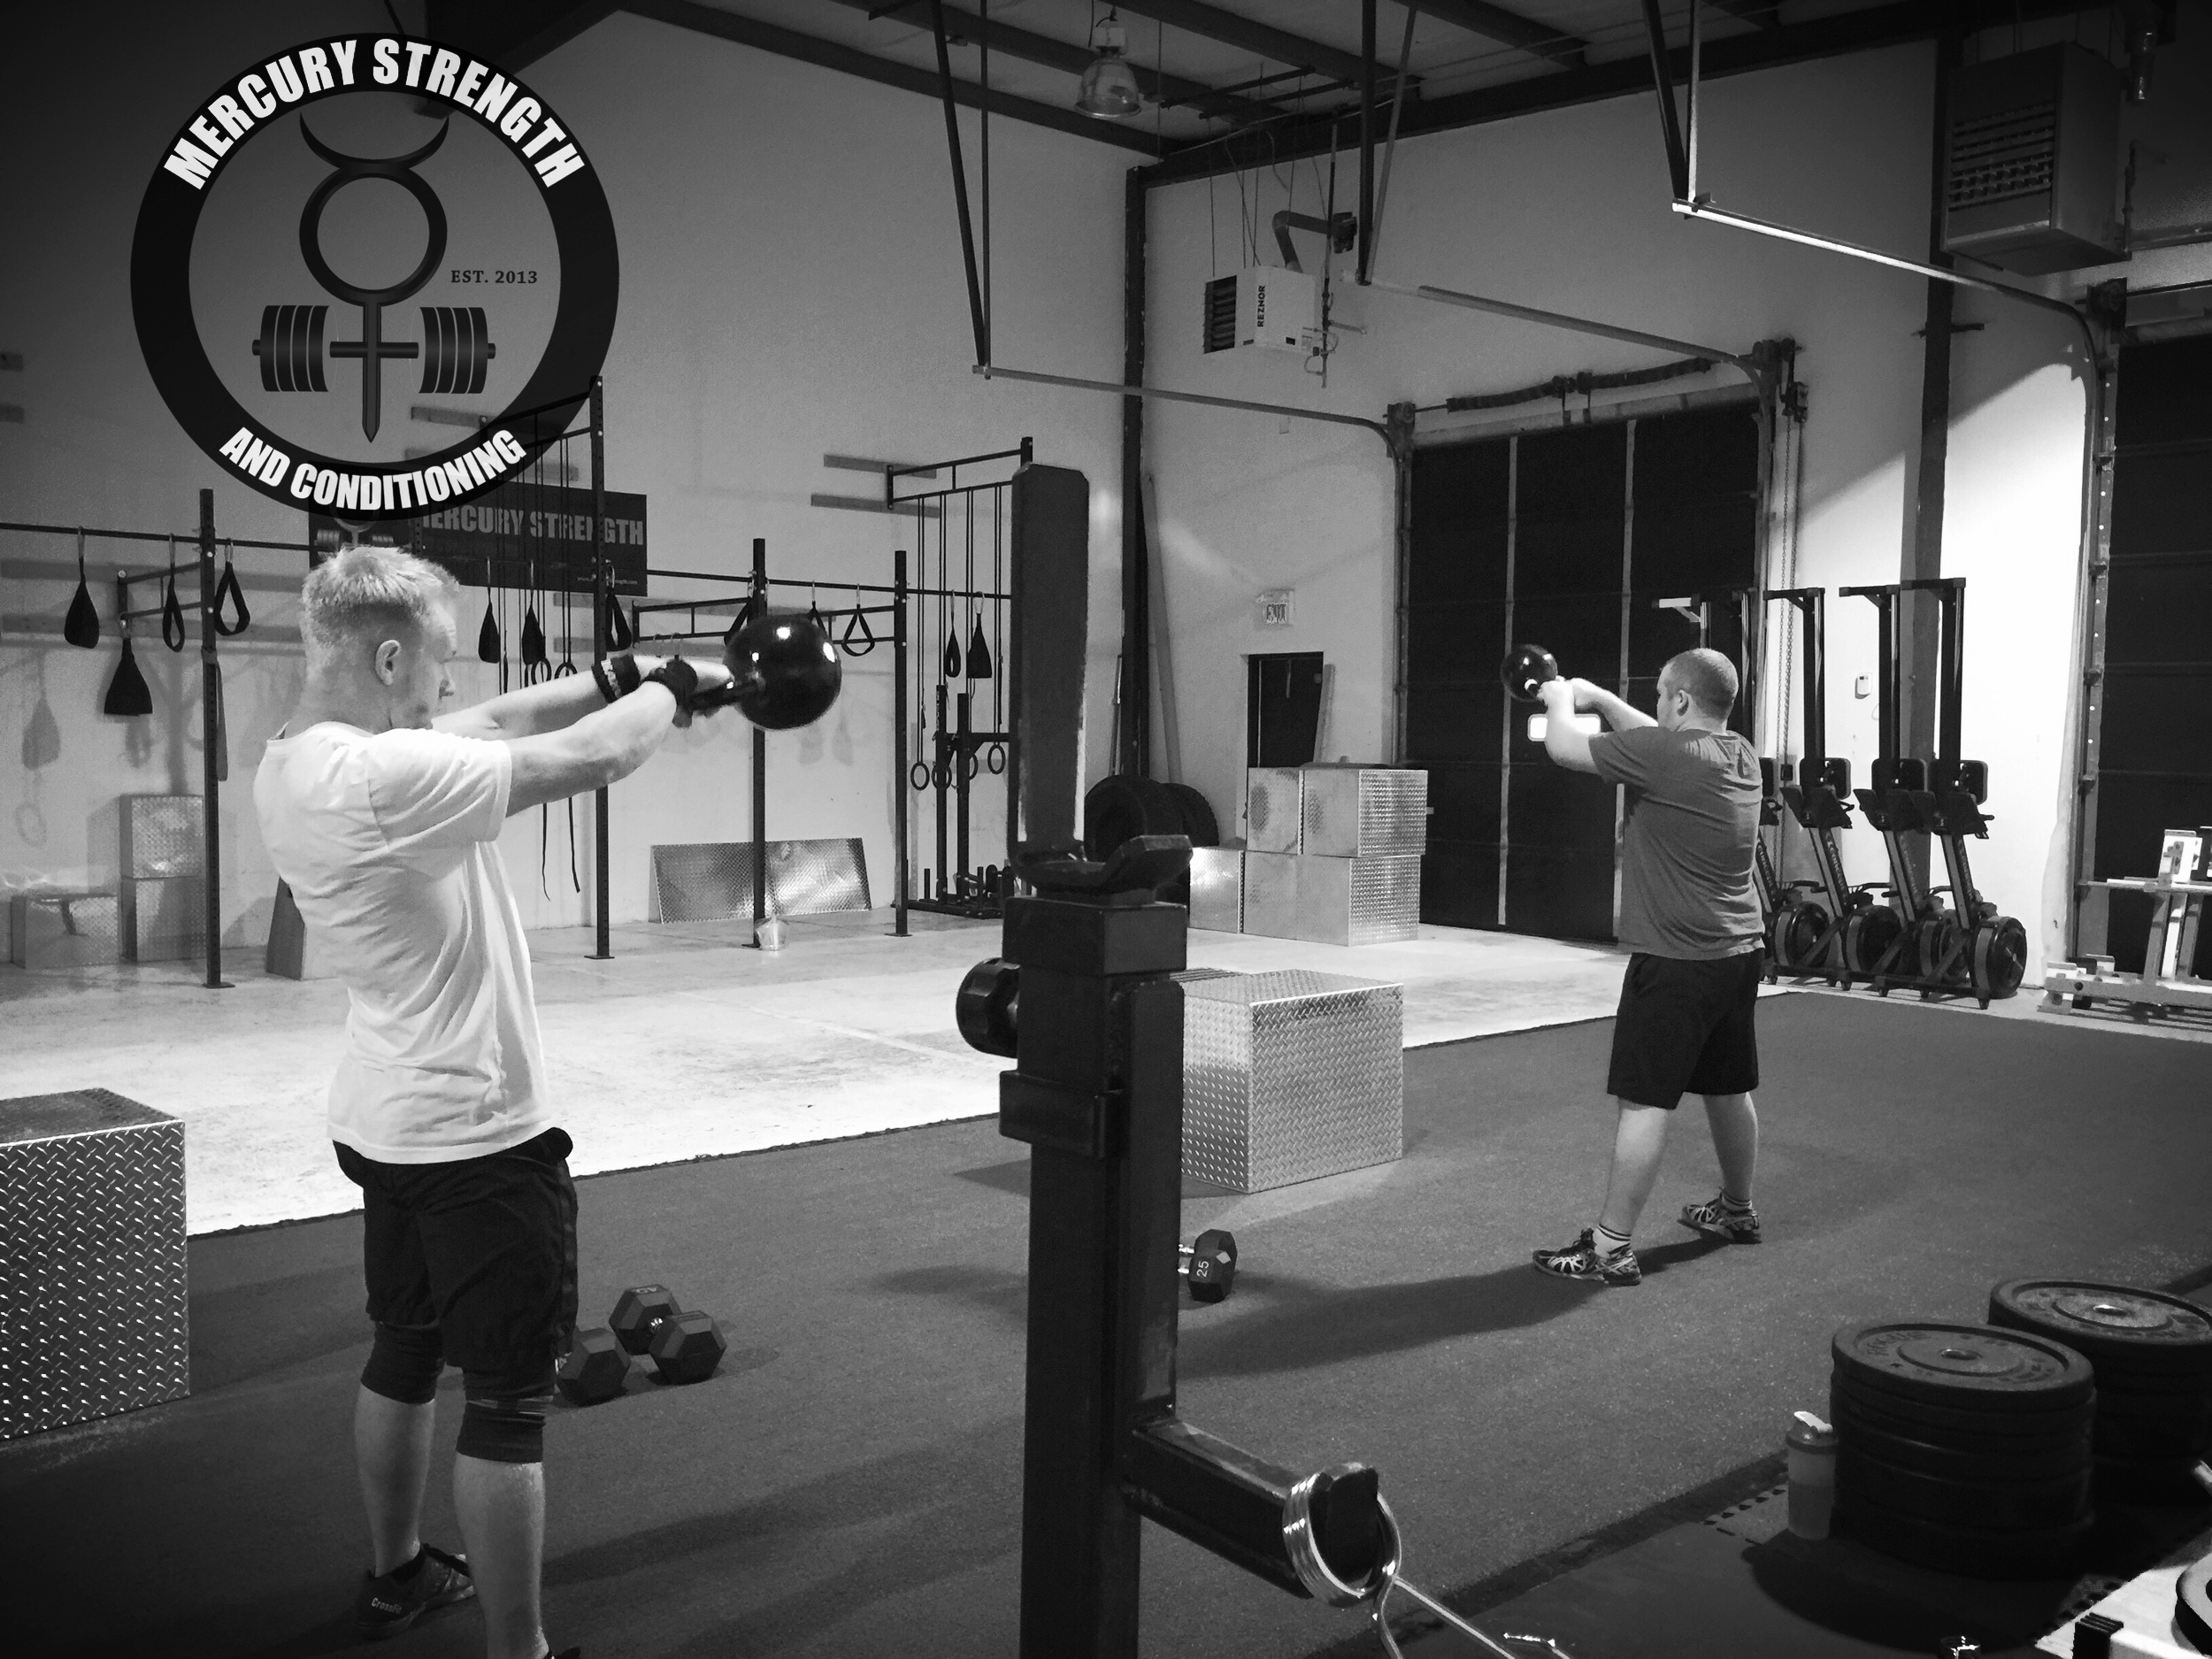 Alec Rhodes of Mercury Strength and Conditioning and Jay Rhodes, owner of CrossFit Outlaw North, duking it out in yesterday's conditioning workout.